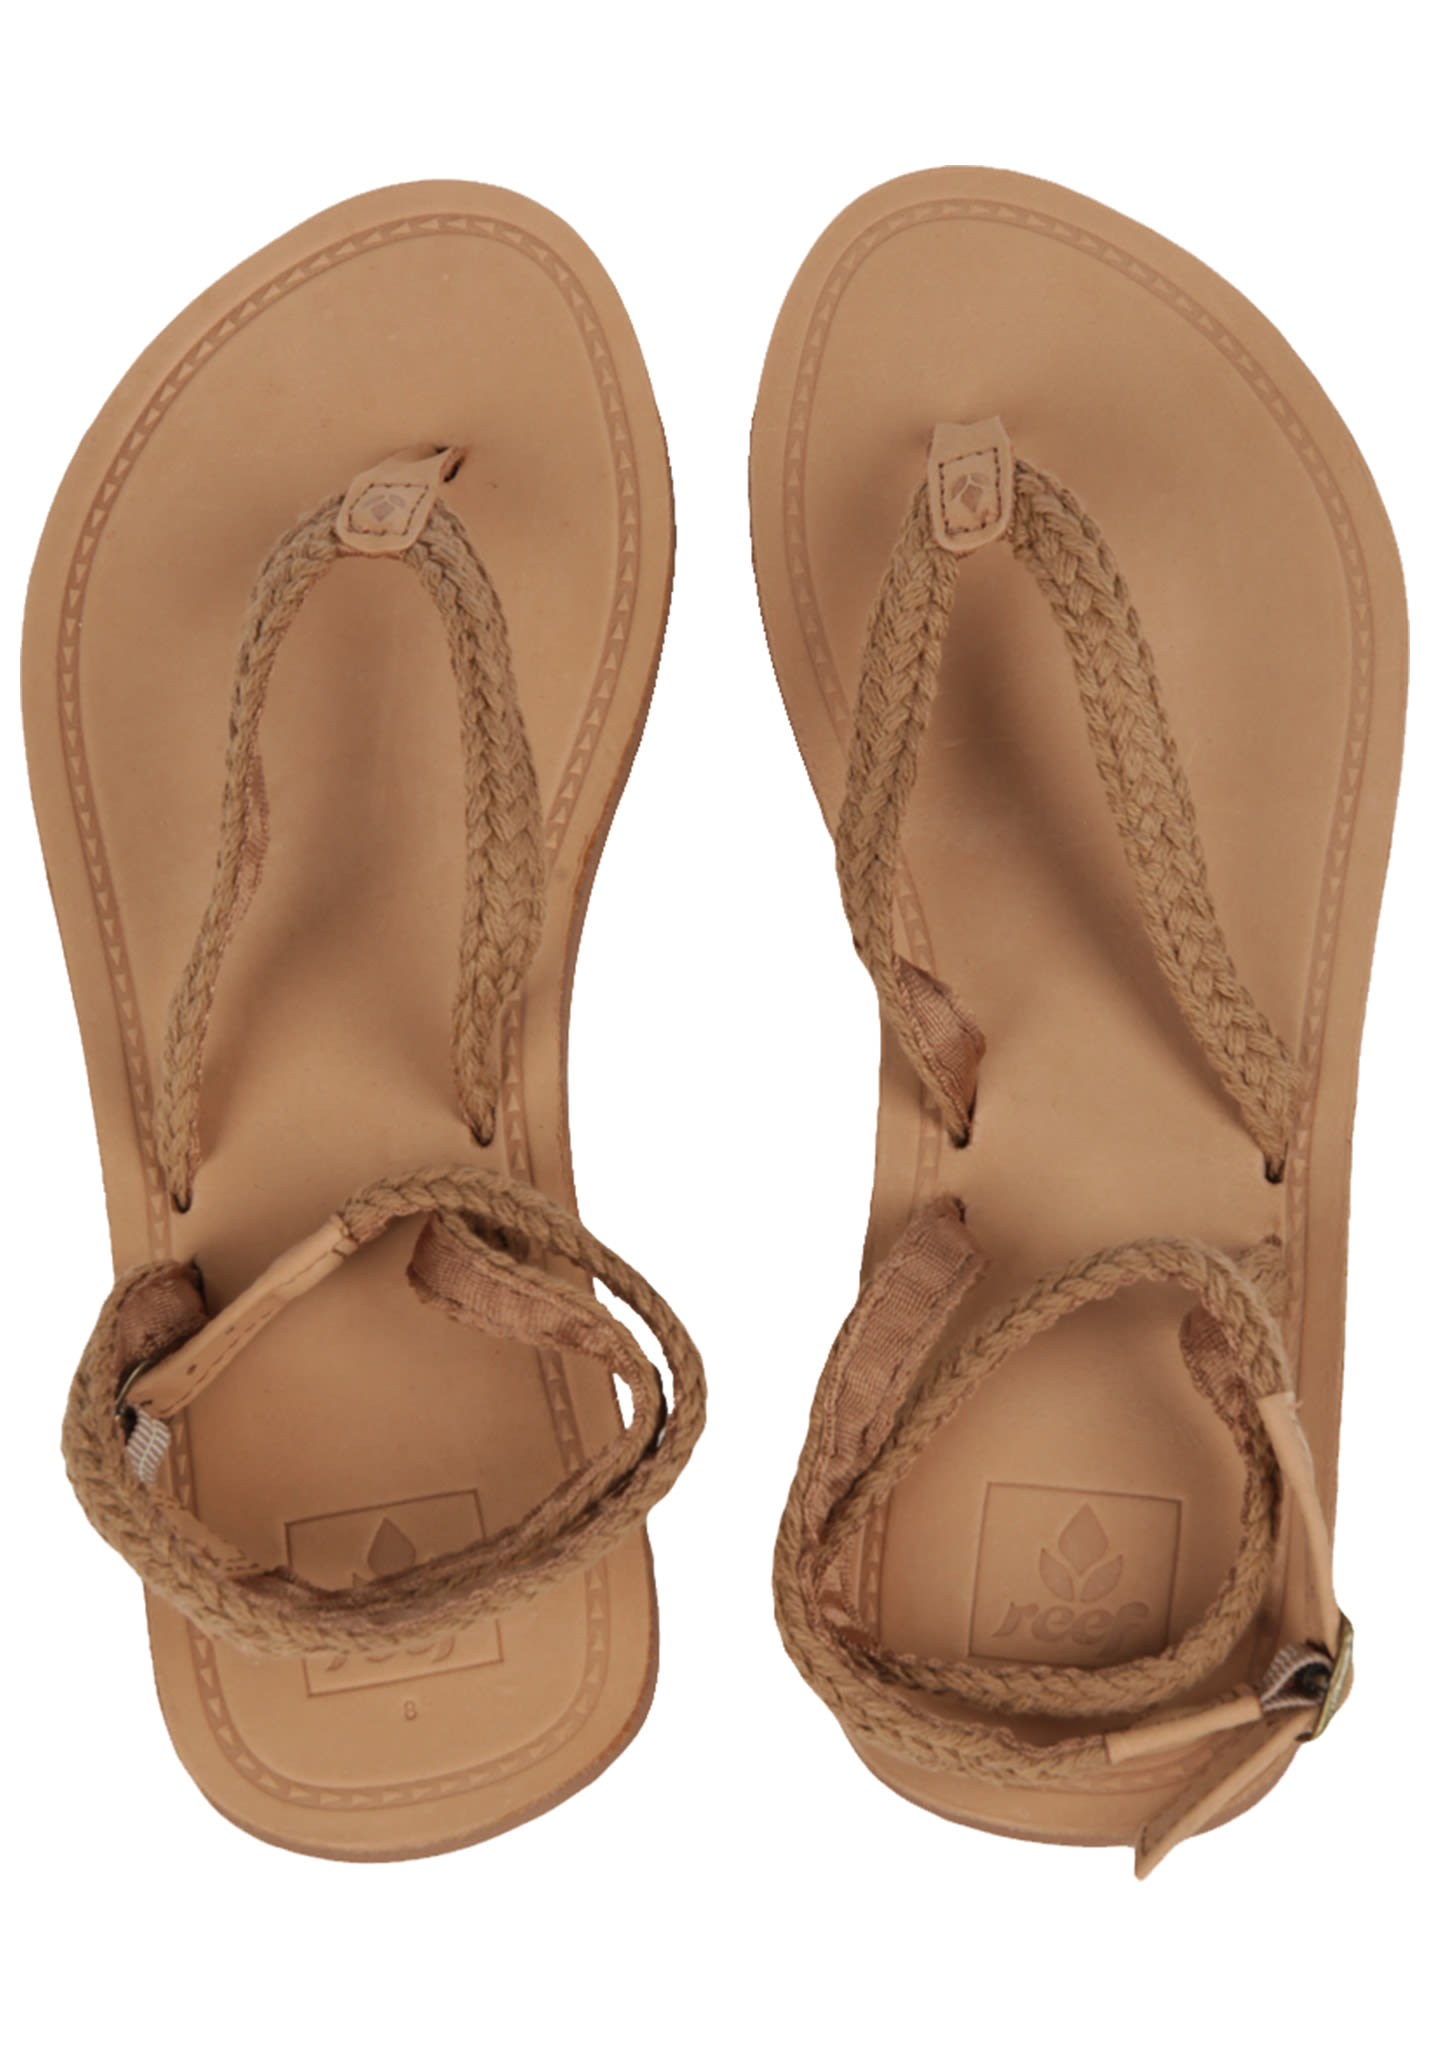 9ad1ea948aa8 Reef Gypsy Wrap - Sandals for Women - Brown - Planet Sports